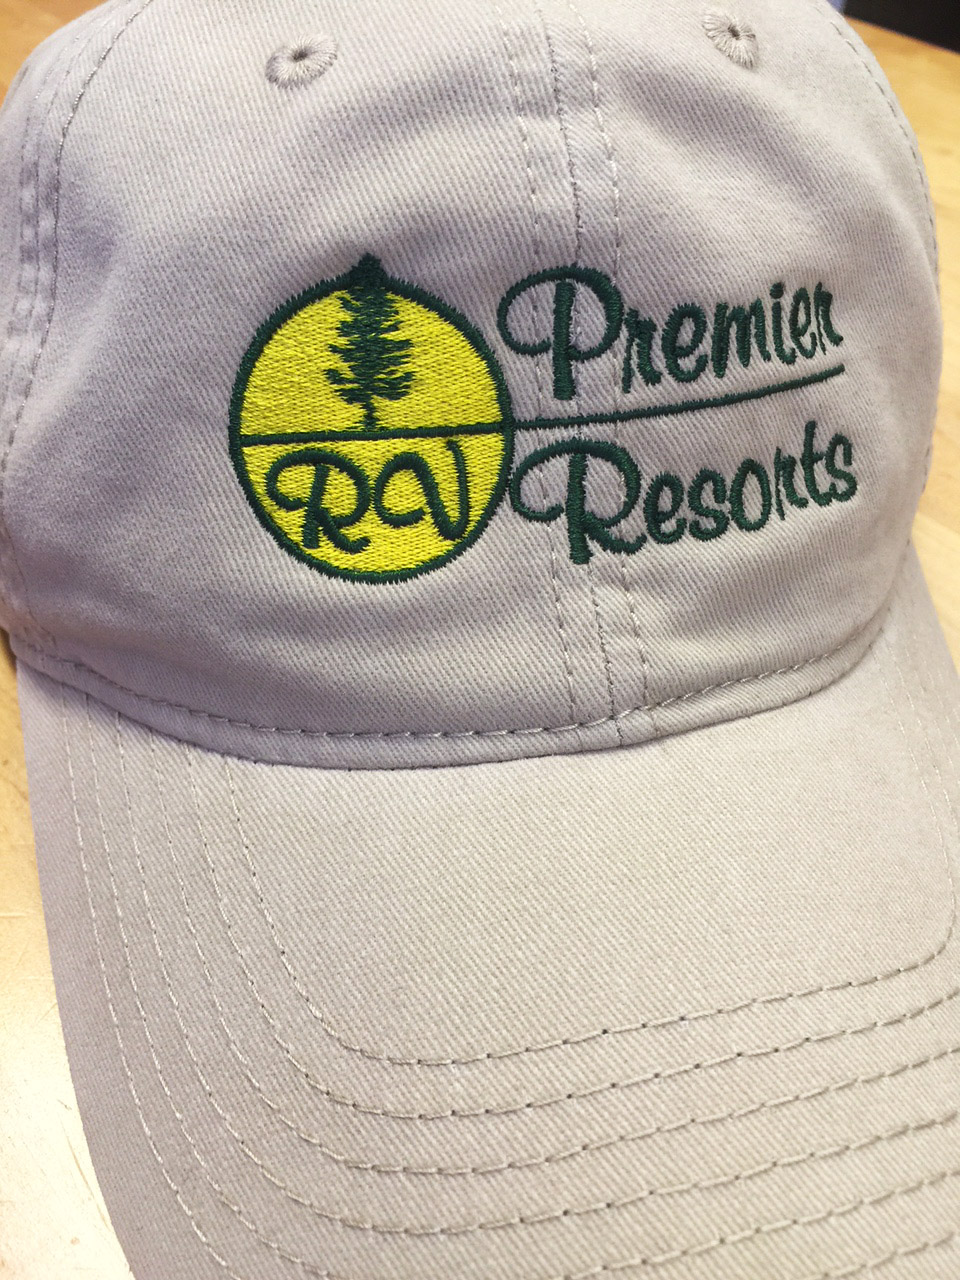 Premier RV Embroidery.jpg